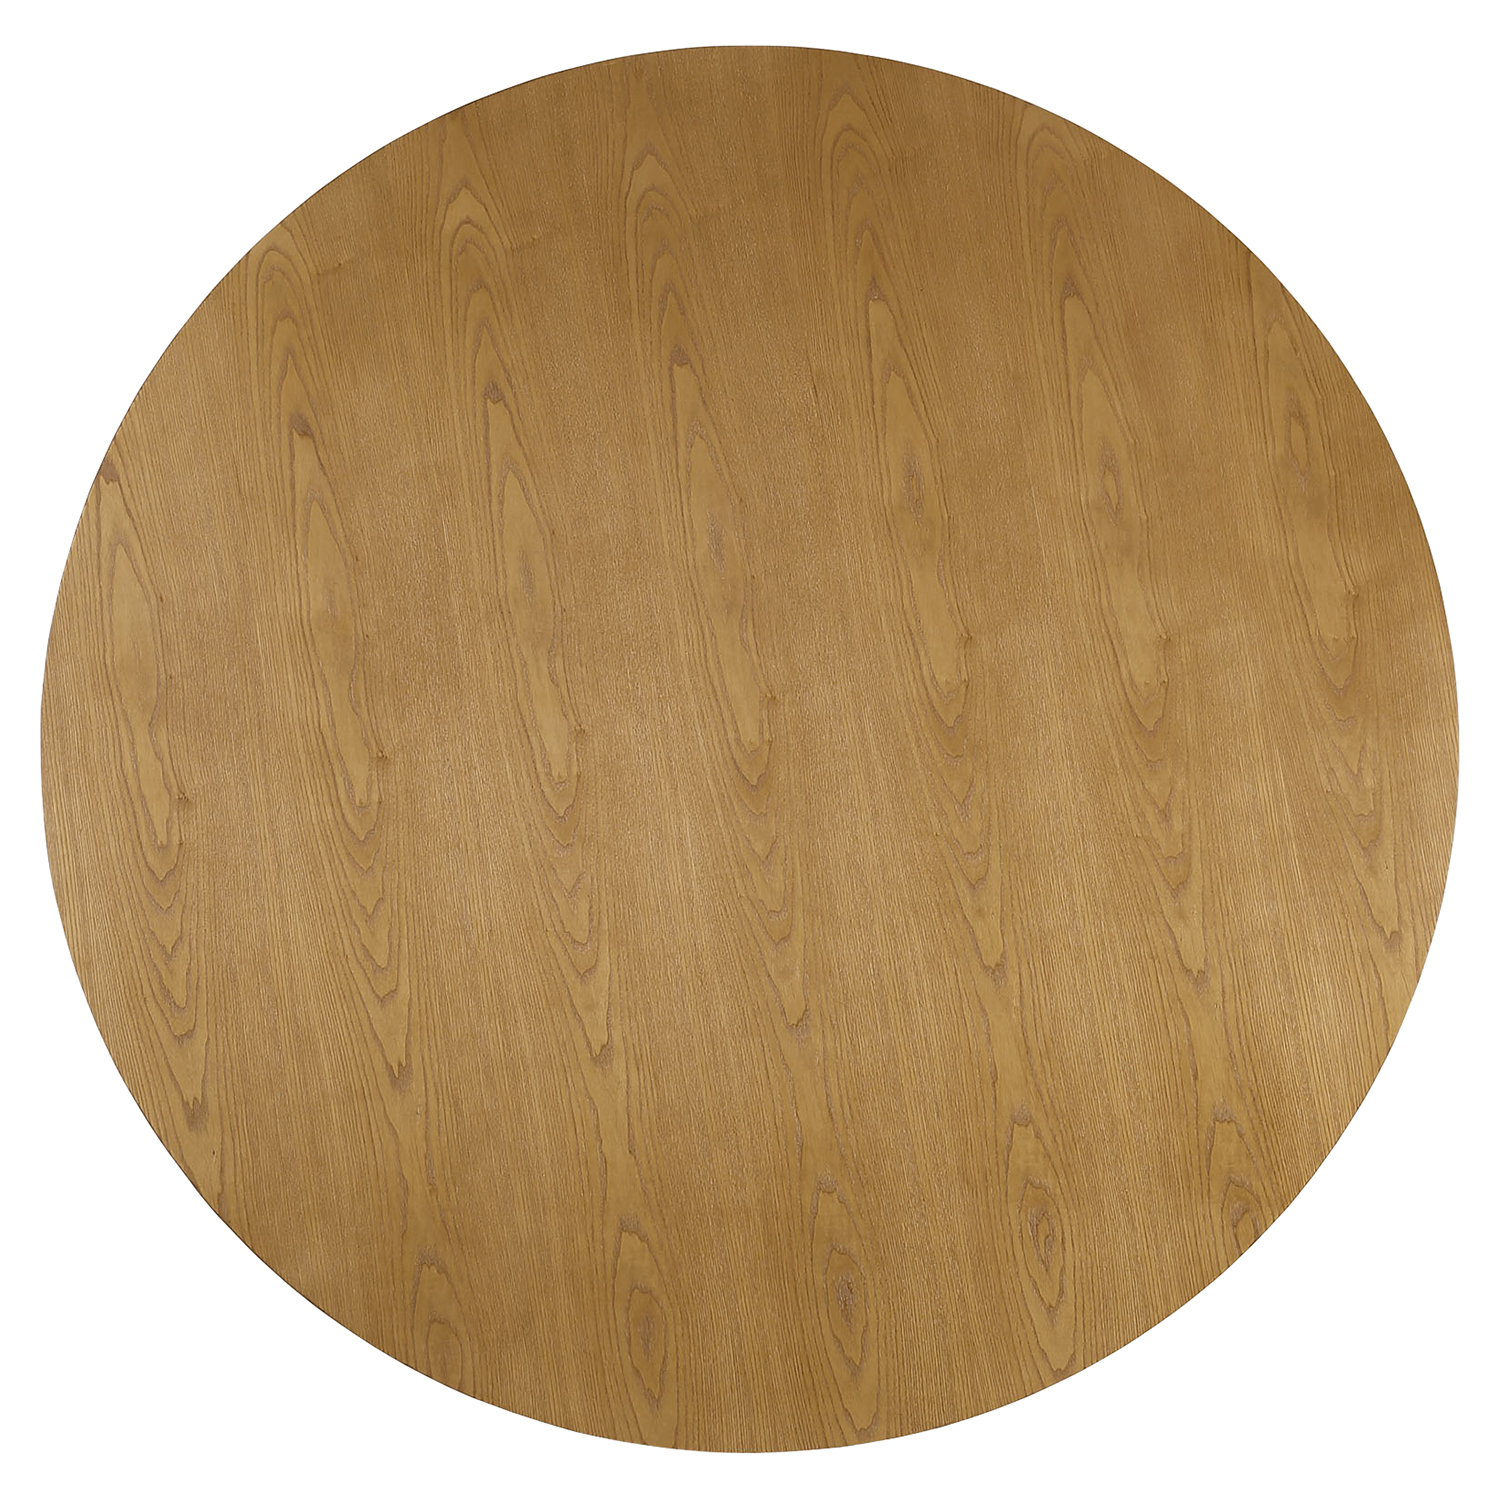 Laurel Wood Round Dining Table - Walnut - EEI-1065-WAL